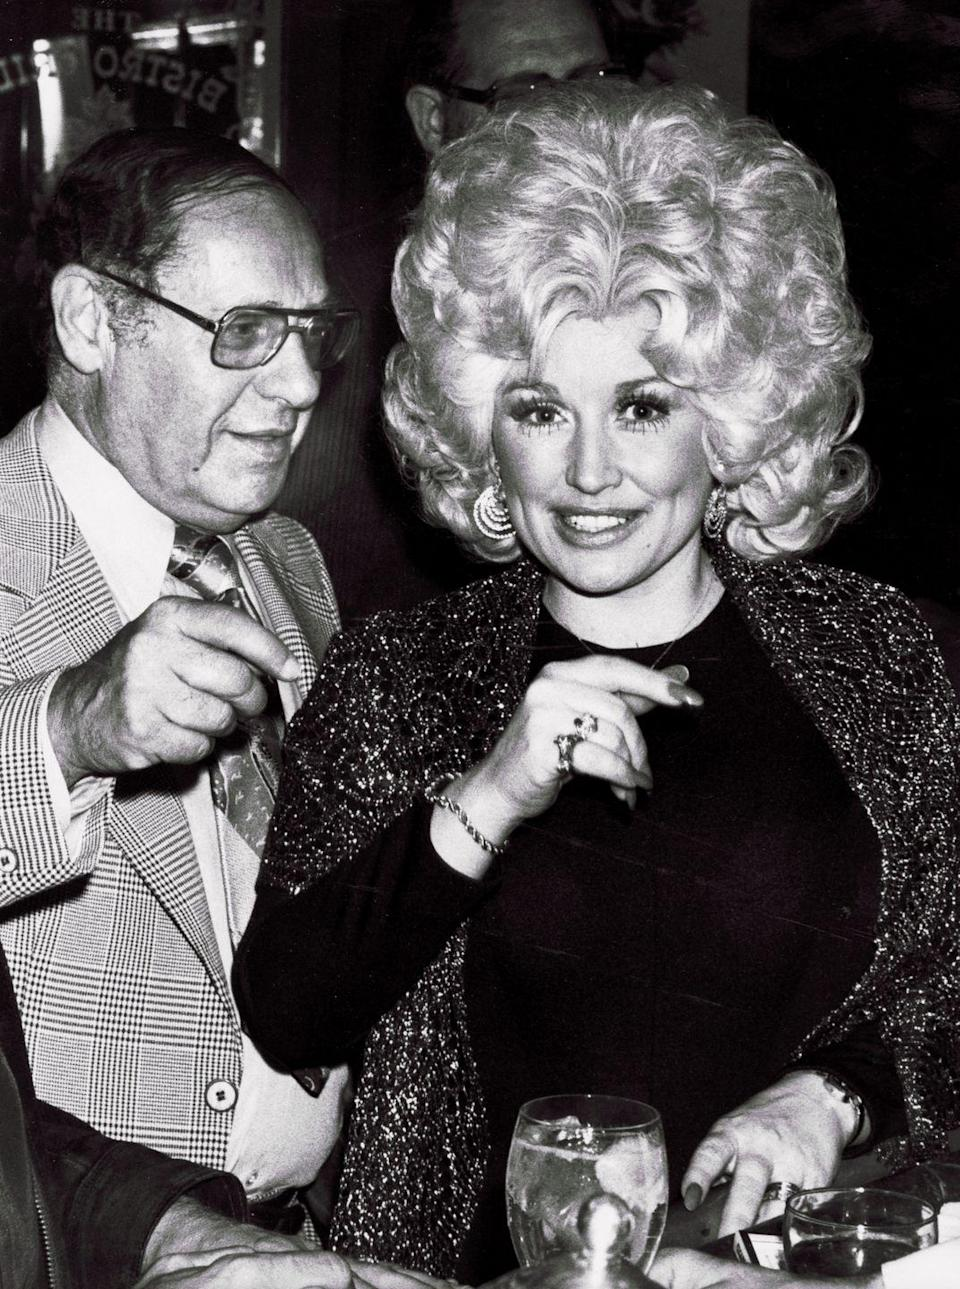 """<p>In 1977, Dolly Parton had climbed the charts with hits like """"Jolene, """"I Will Always Love You,"""" and """"Coat of Many Colors."""" She was on the cusp of making the transition to pop-country crossovers as more leaders in the industry began to realize her star potential. Here, she sparkles at an RCA party with iconic agent Lee Solters. </p>"""